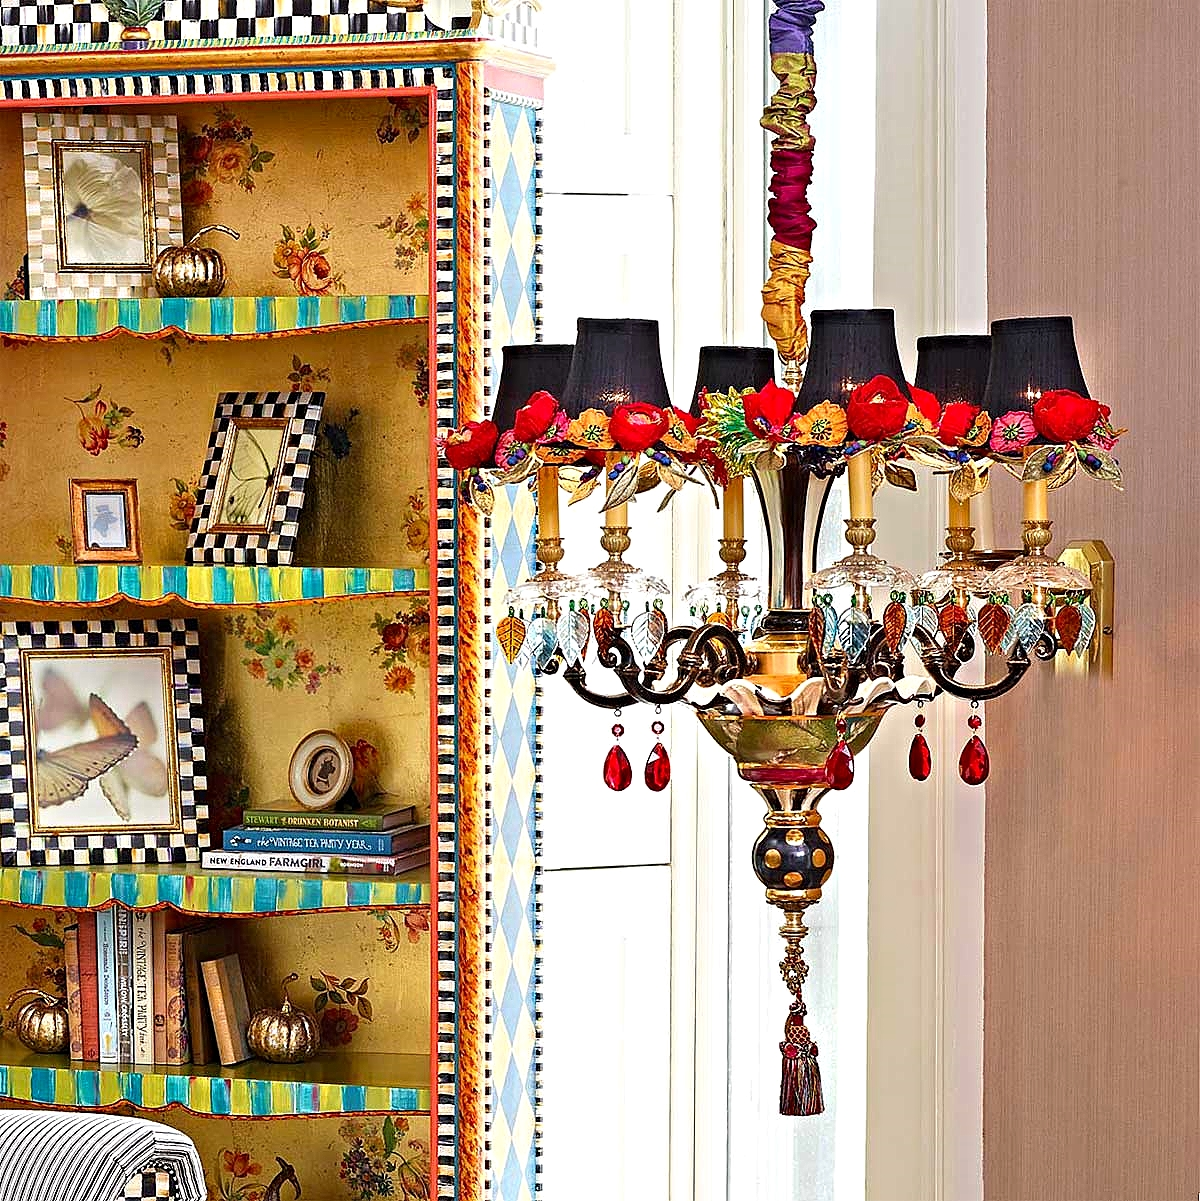 Small Dark Everlasting Chandelier & Arlecchino Bookcase